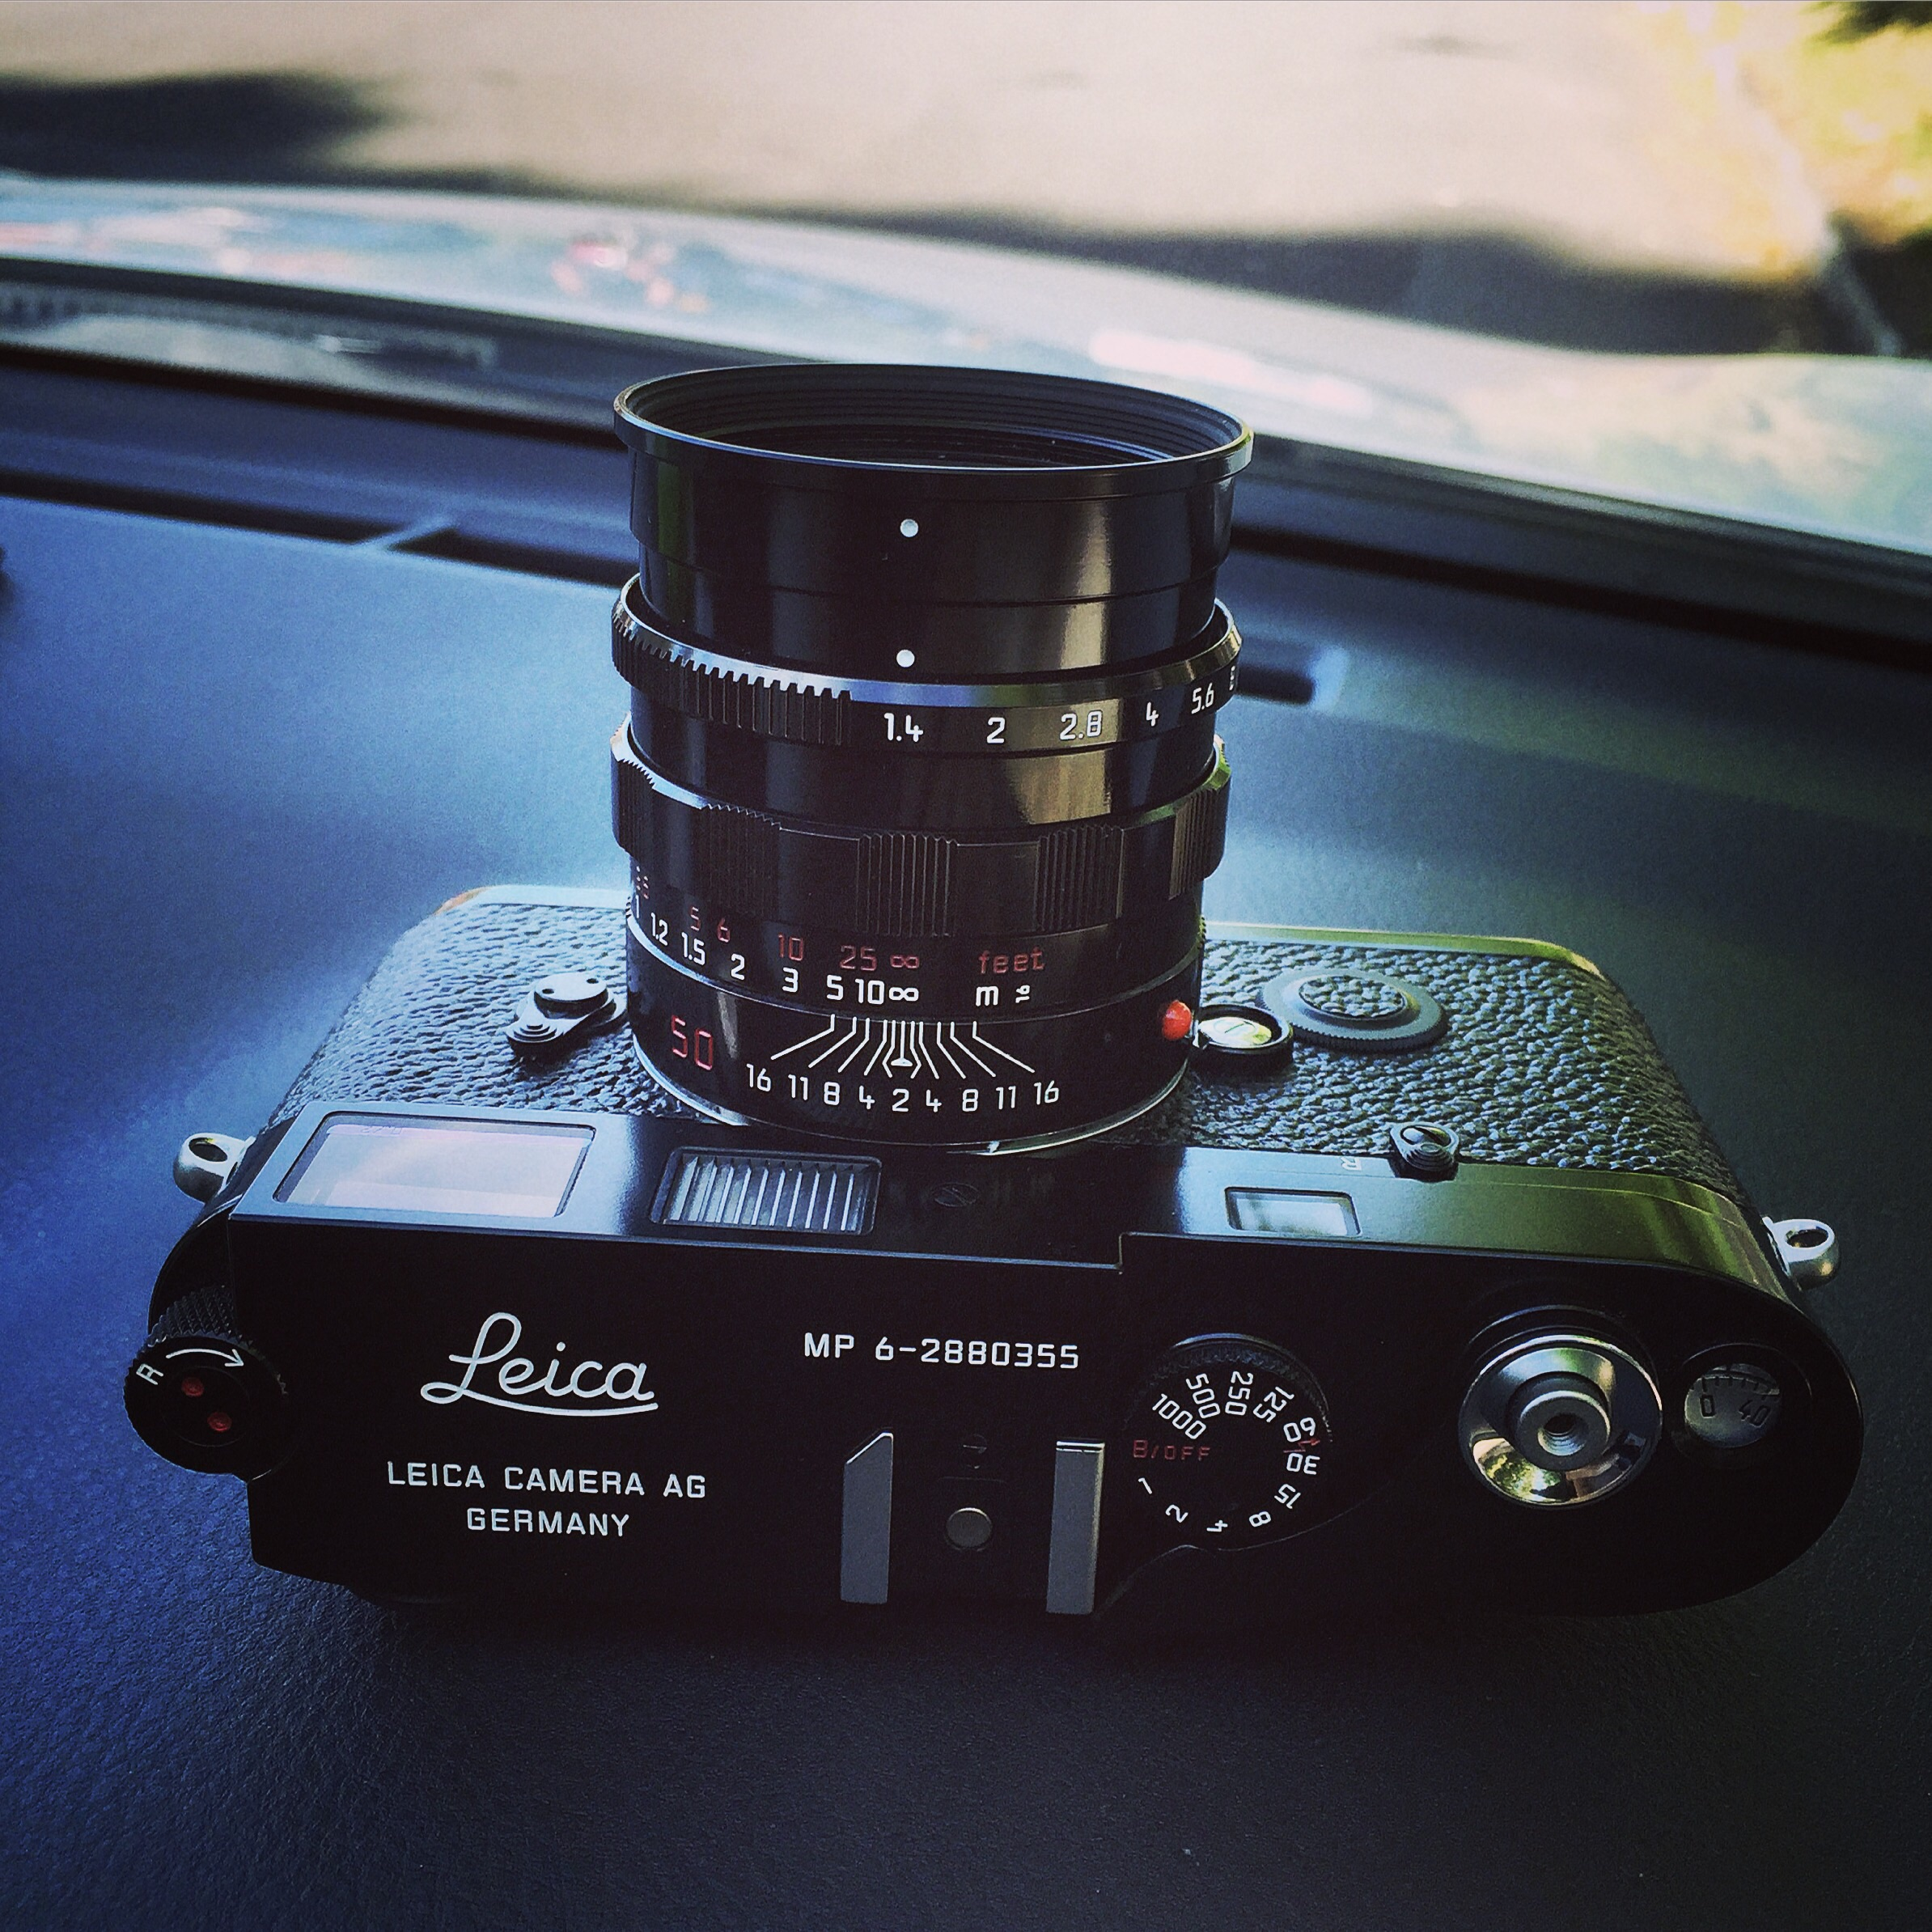 Leica MP-6 with matching Leica 50mm F1.4 Summilux in Black Paint.